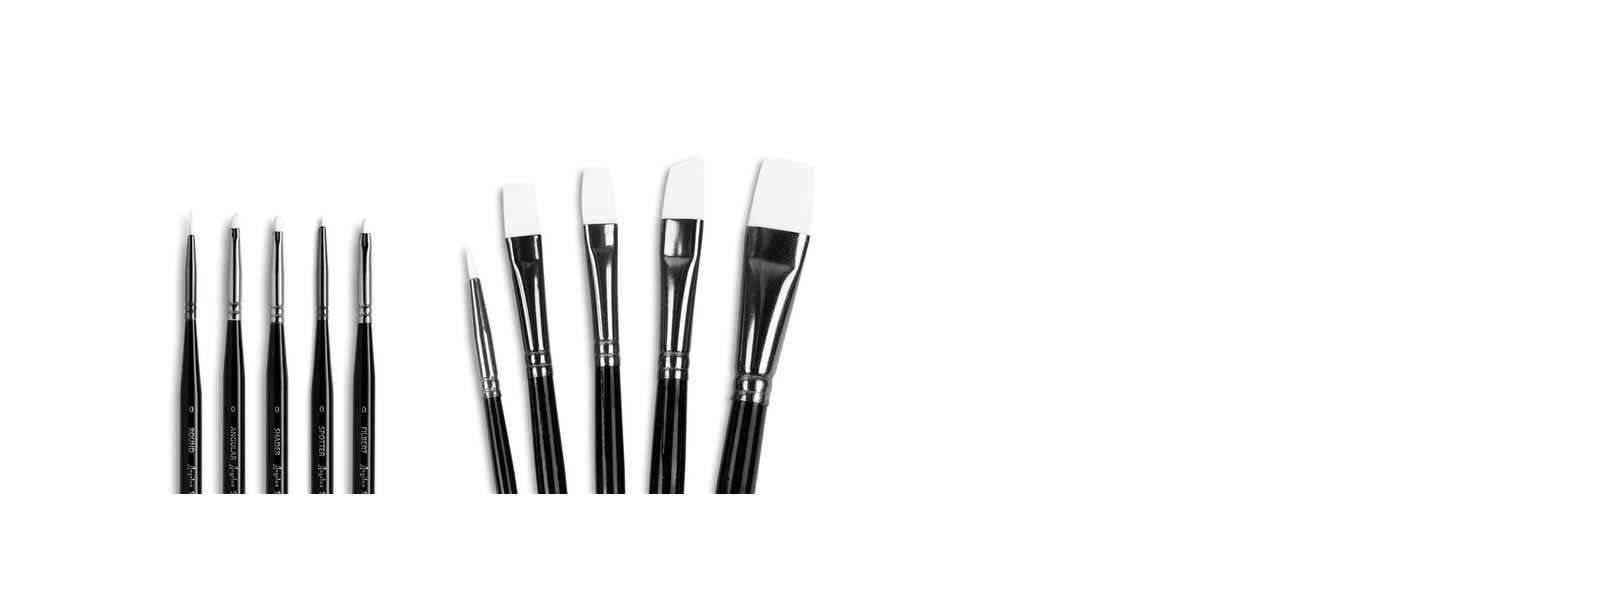 paint-brush-set-banner-2